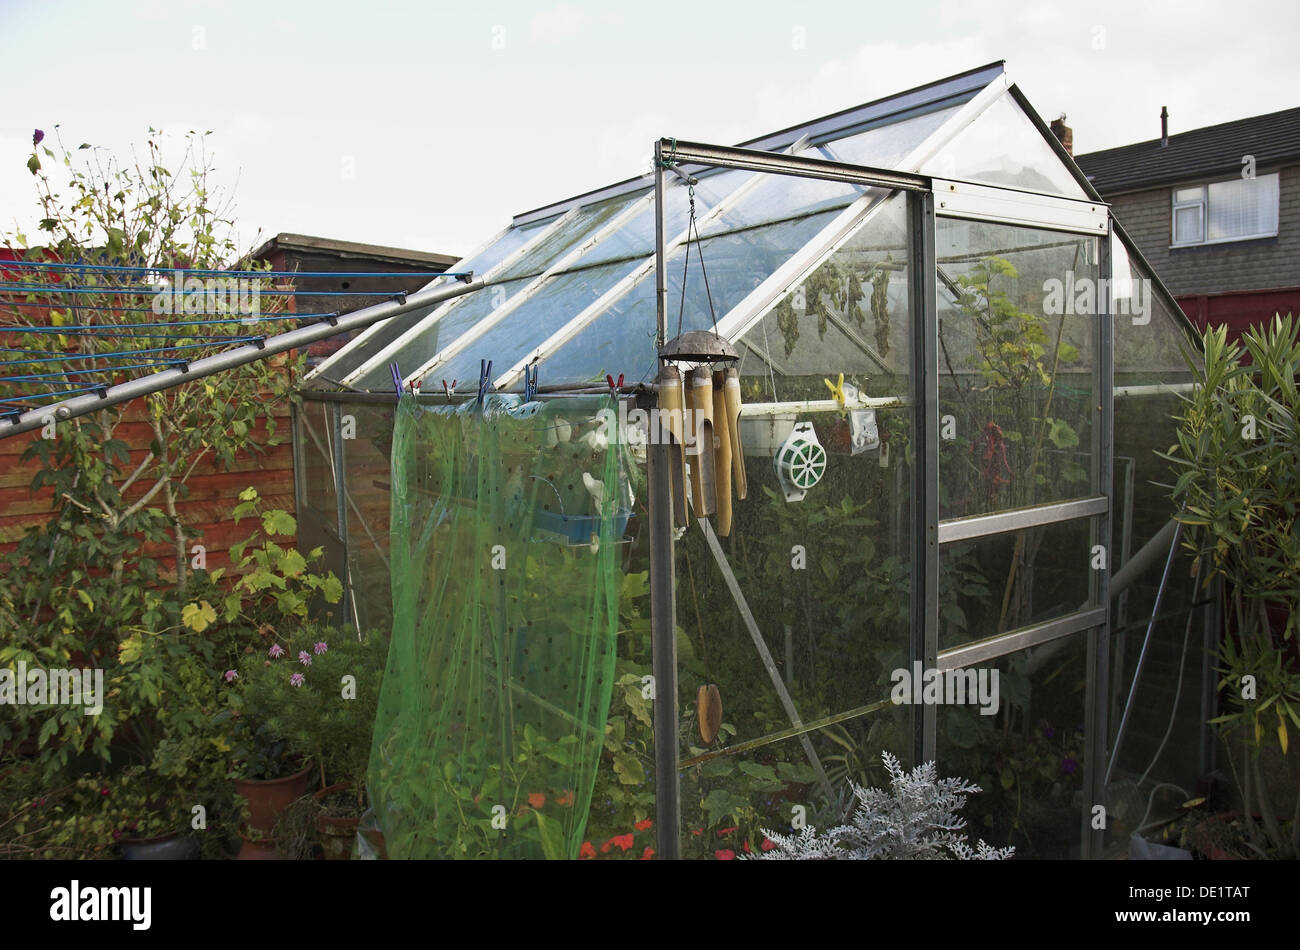 Backyard, Greenhouse, Green, House, Glass, Glasshouse, Micro Climate,  Growing